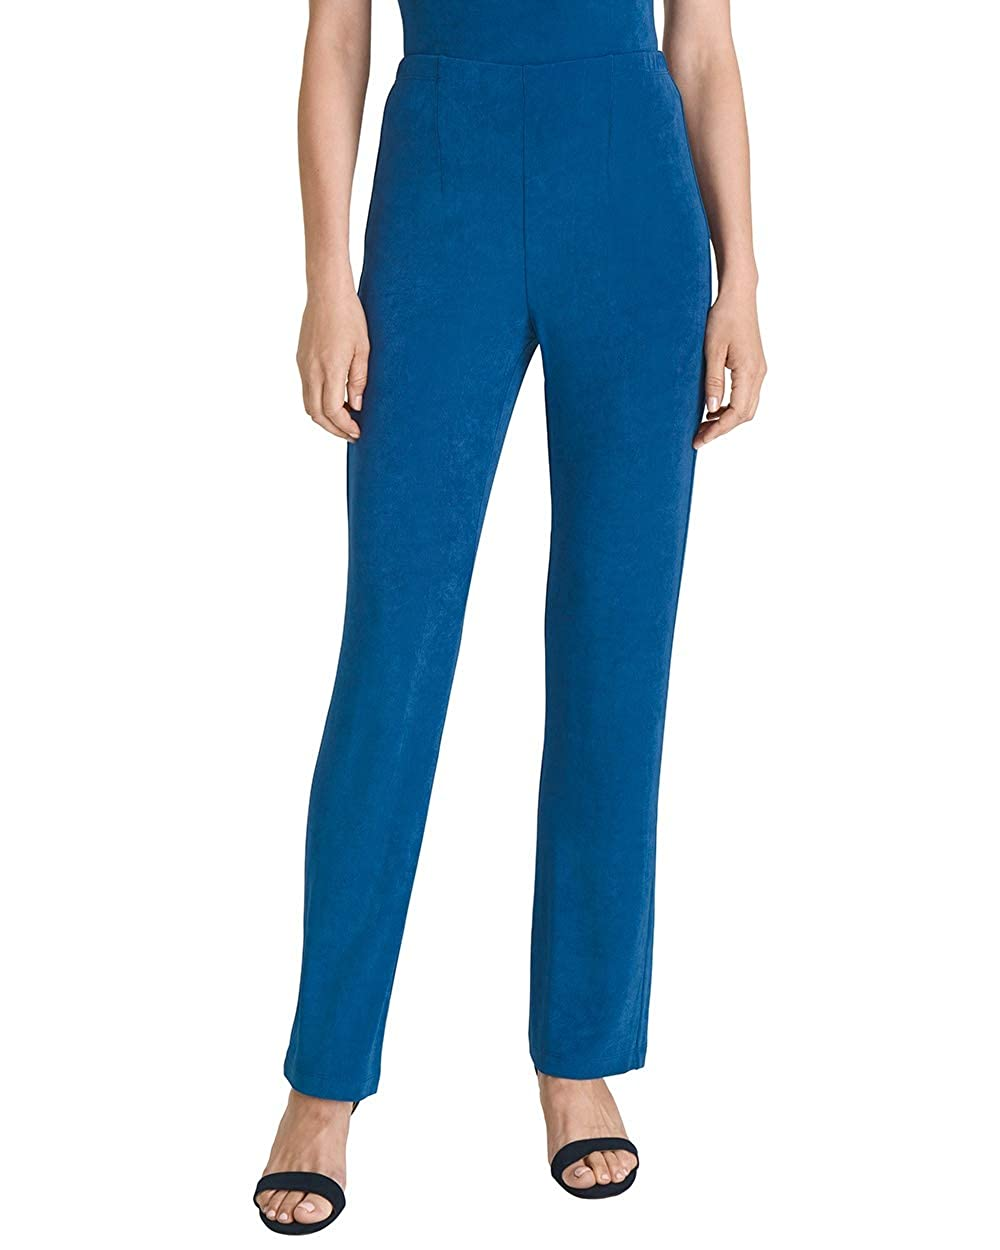 Vintage High Waisted Trousers, Sailor Pants, Jeans Chicos Womens Travelers Classic No Tummy Wrinkle Resistant Pull On Straight Leg Pants $49.99 AT vintagedancer.com